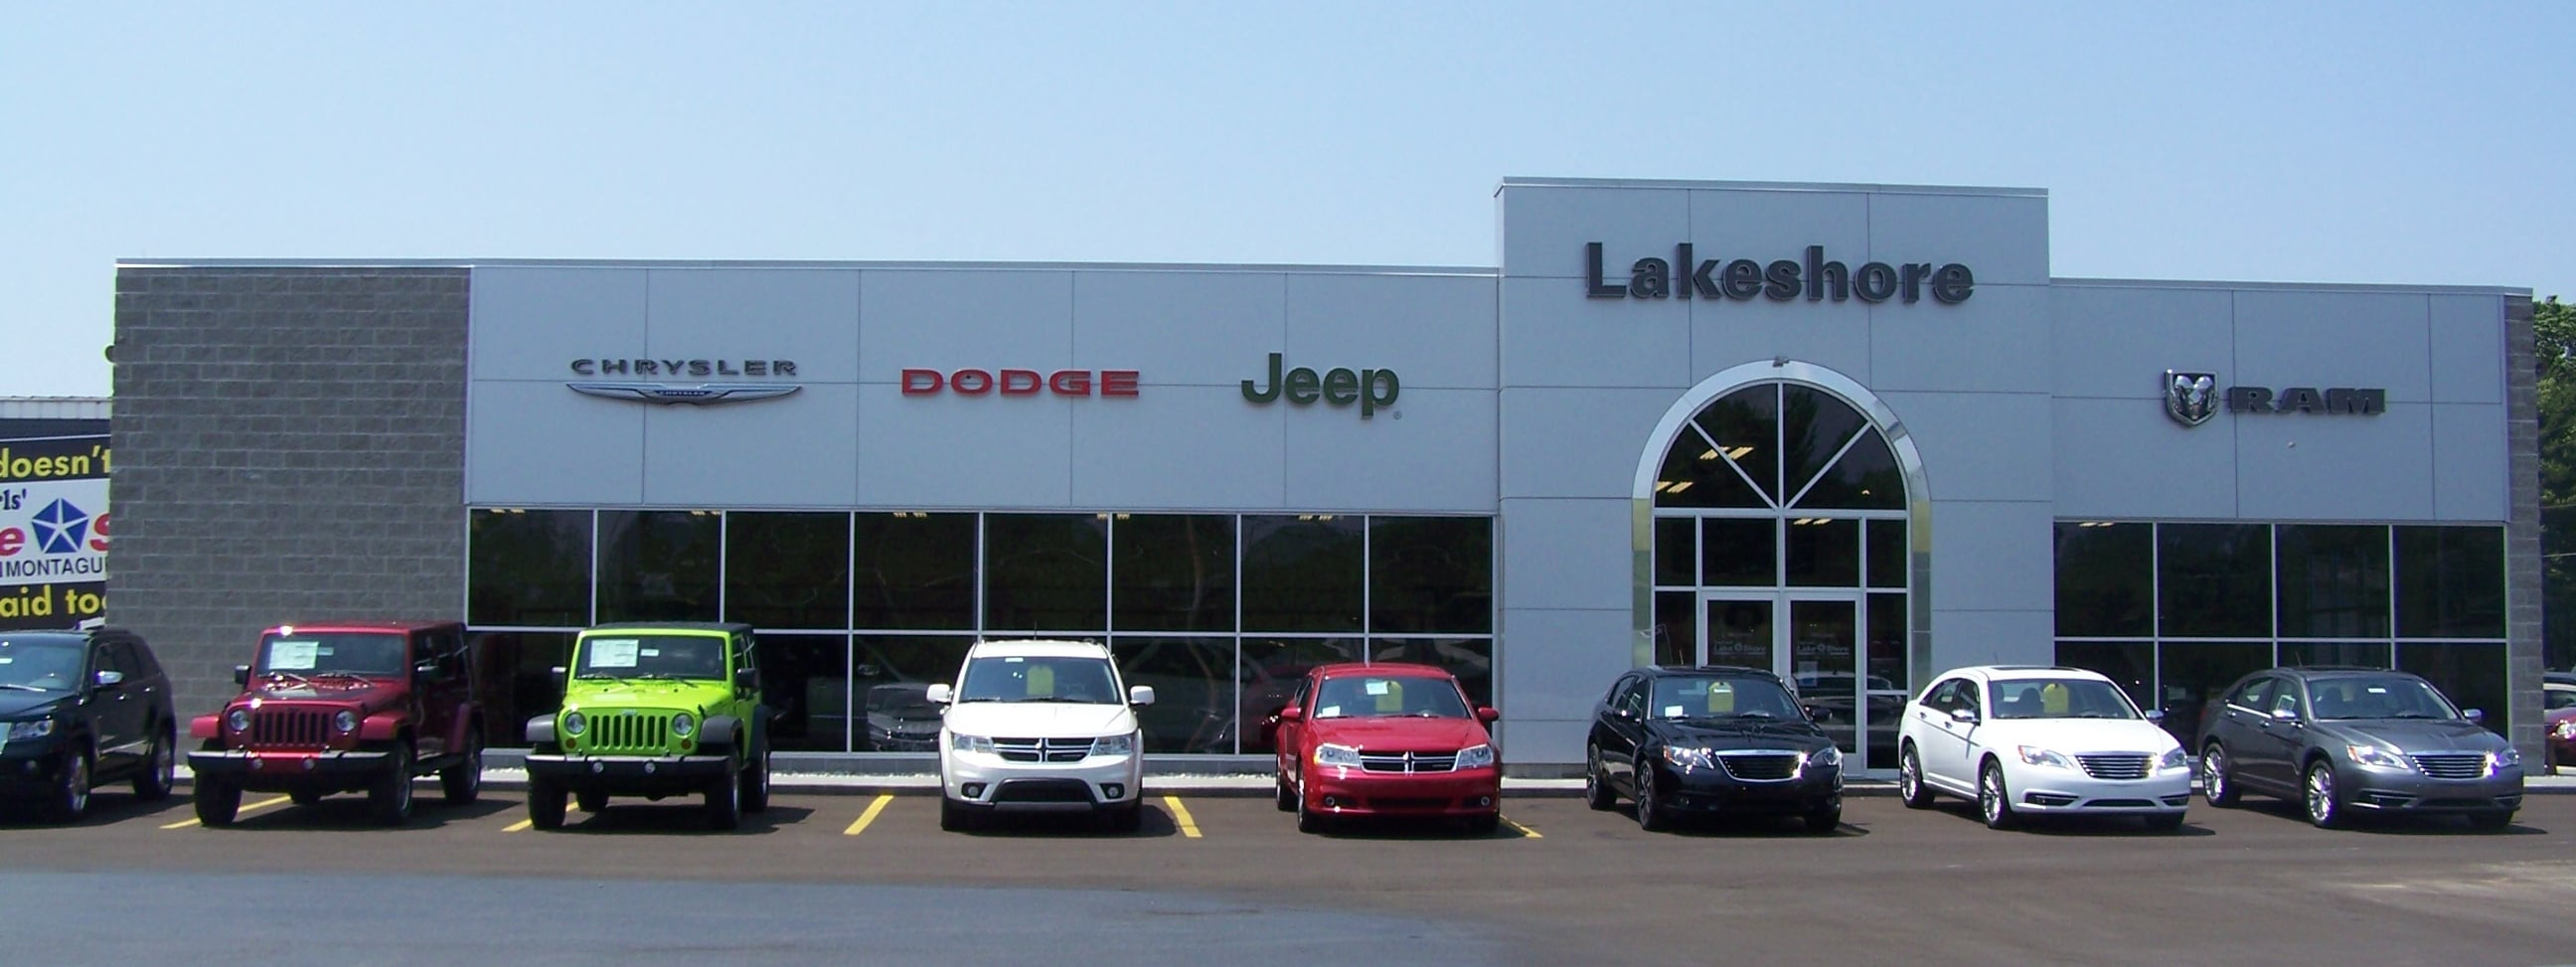 Lakeshore Chrysler Dodge Jeep Ram  About Us  Muskegon Mi. San Jose Culinary School Employee On Boarding. Web Server Vs Application Server. Star Wars Blender Models Pat Lee Photographer. Web Based Training Courses Uhaul Richmond Va. Blog Content Marketing Live In Nanny New York. Trade School Baton Rouge Quality Loan Service. Satellite Tv And Internet Providers In My Area. Distant Learning Degrees Csu Application Form